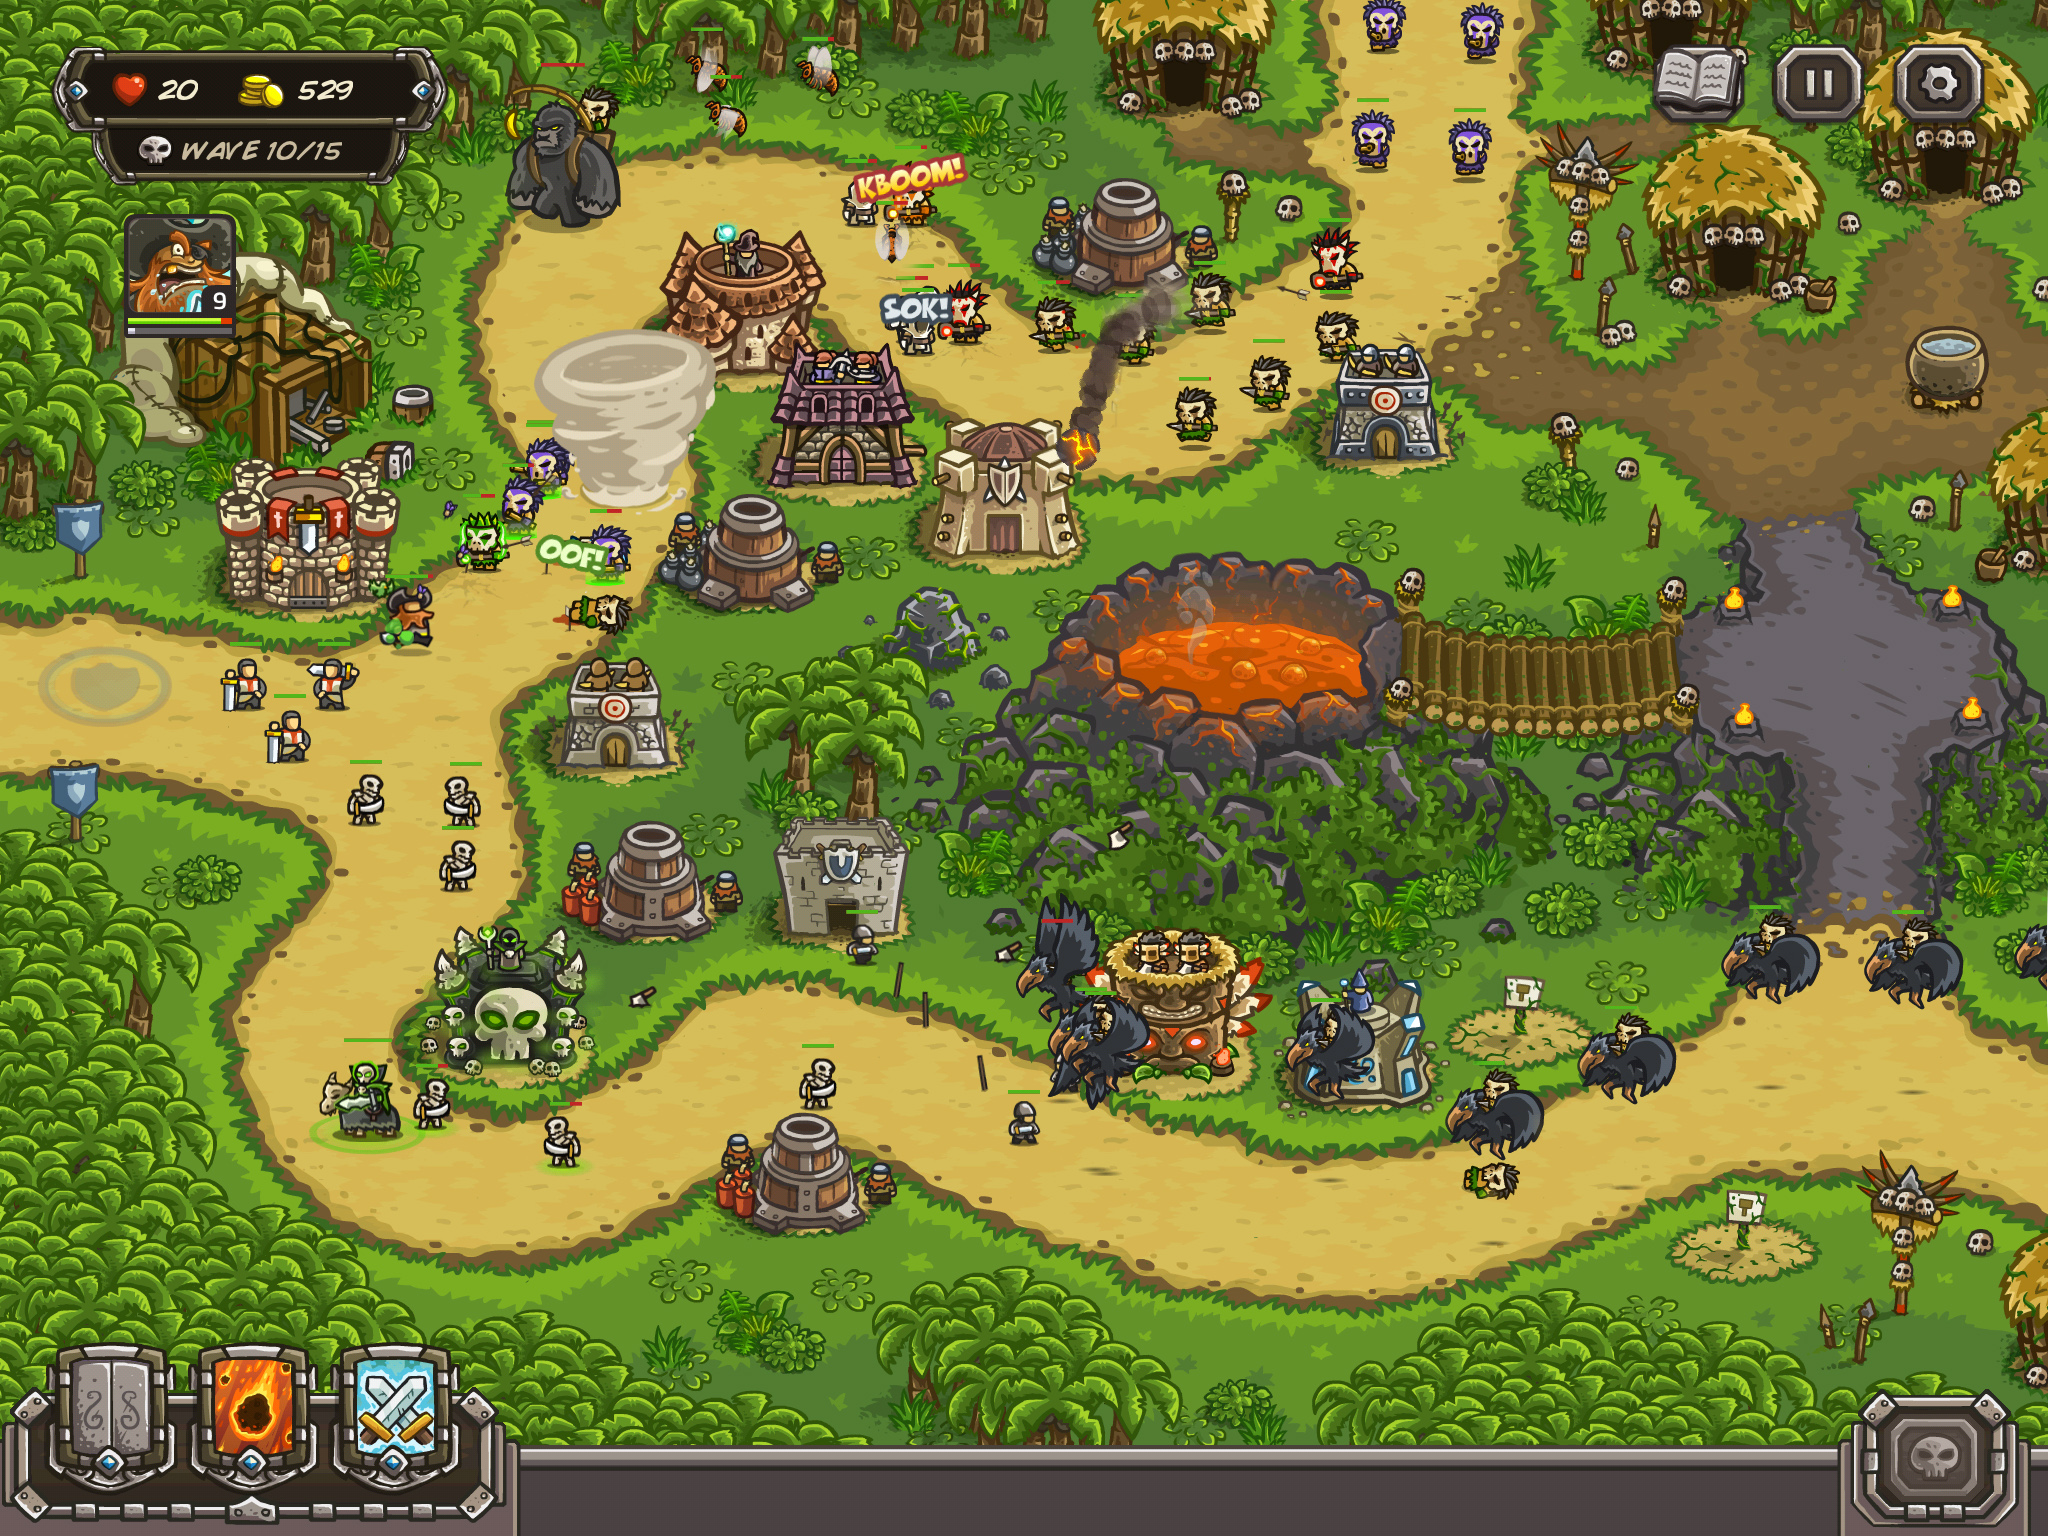 browser based kingdom rush frontiers free today via armor games